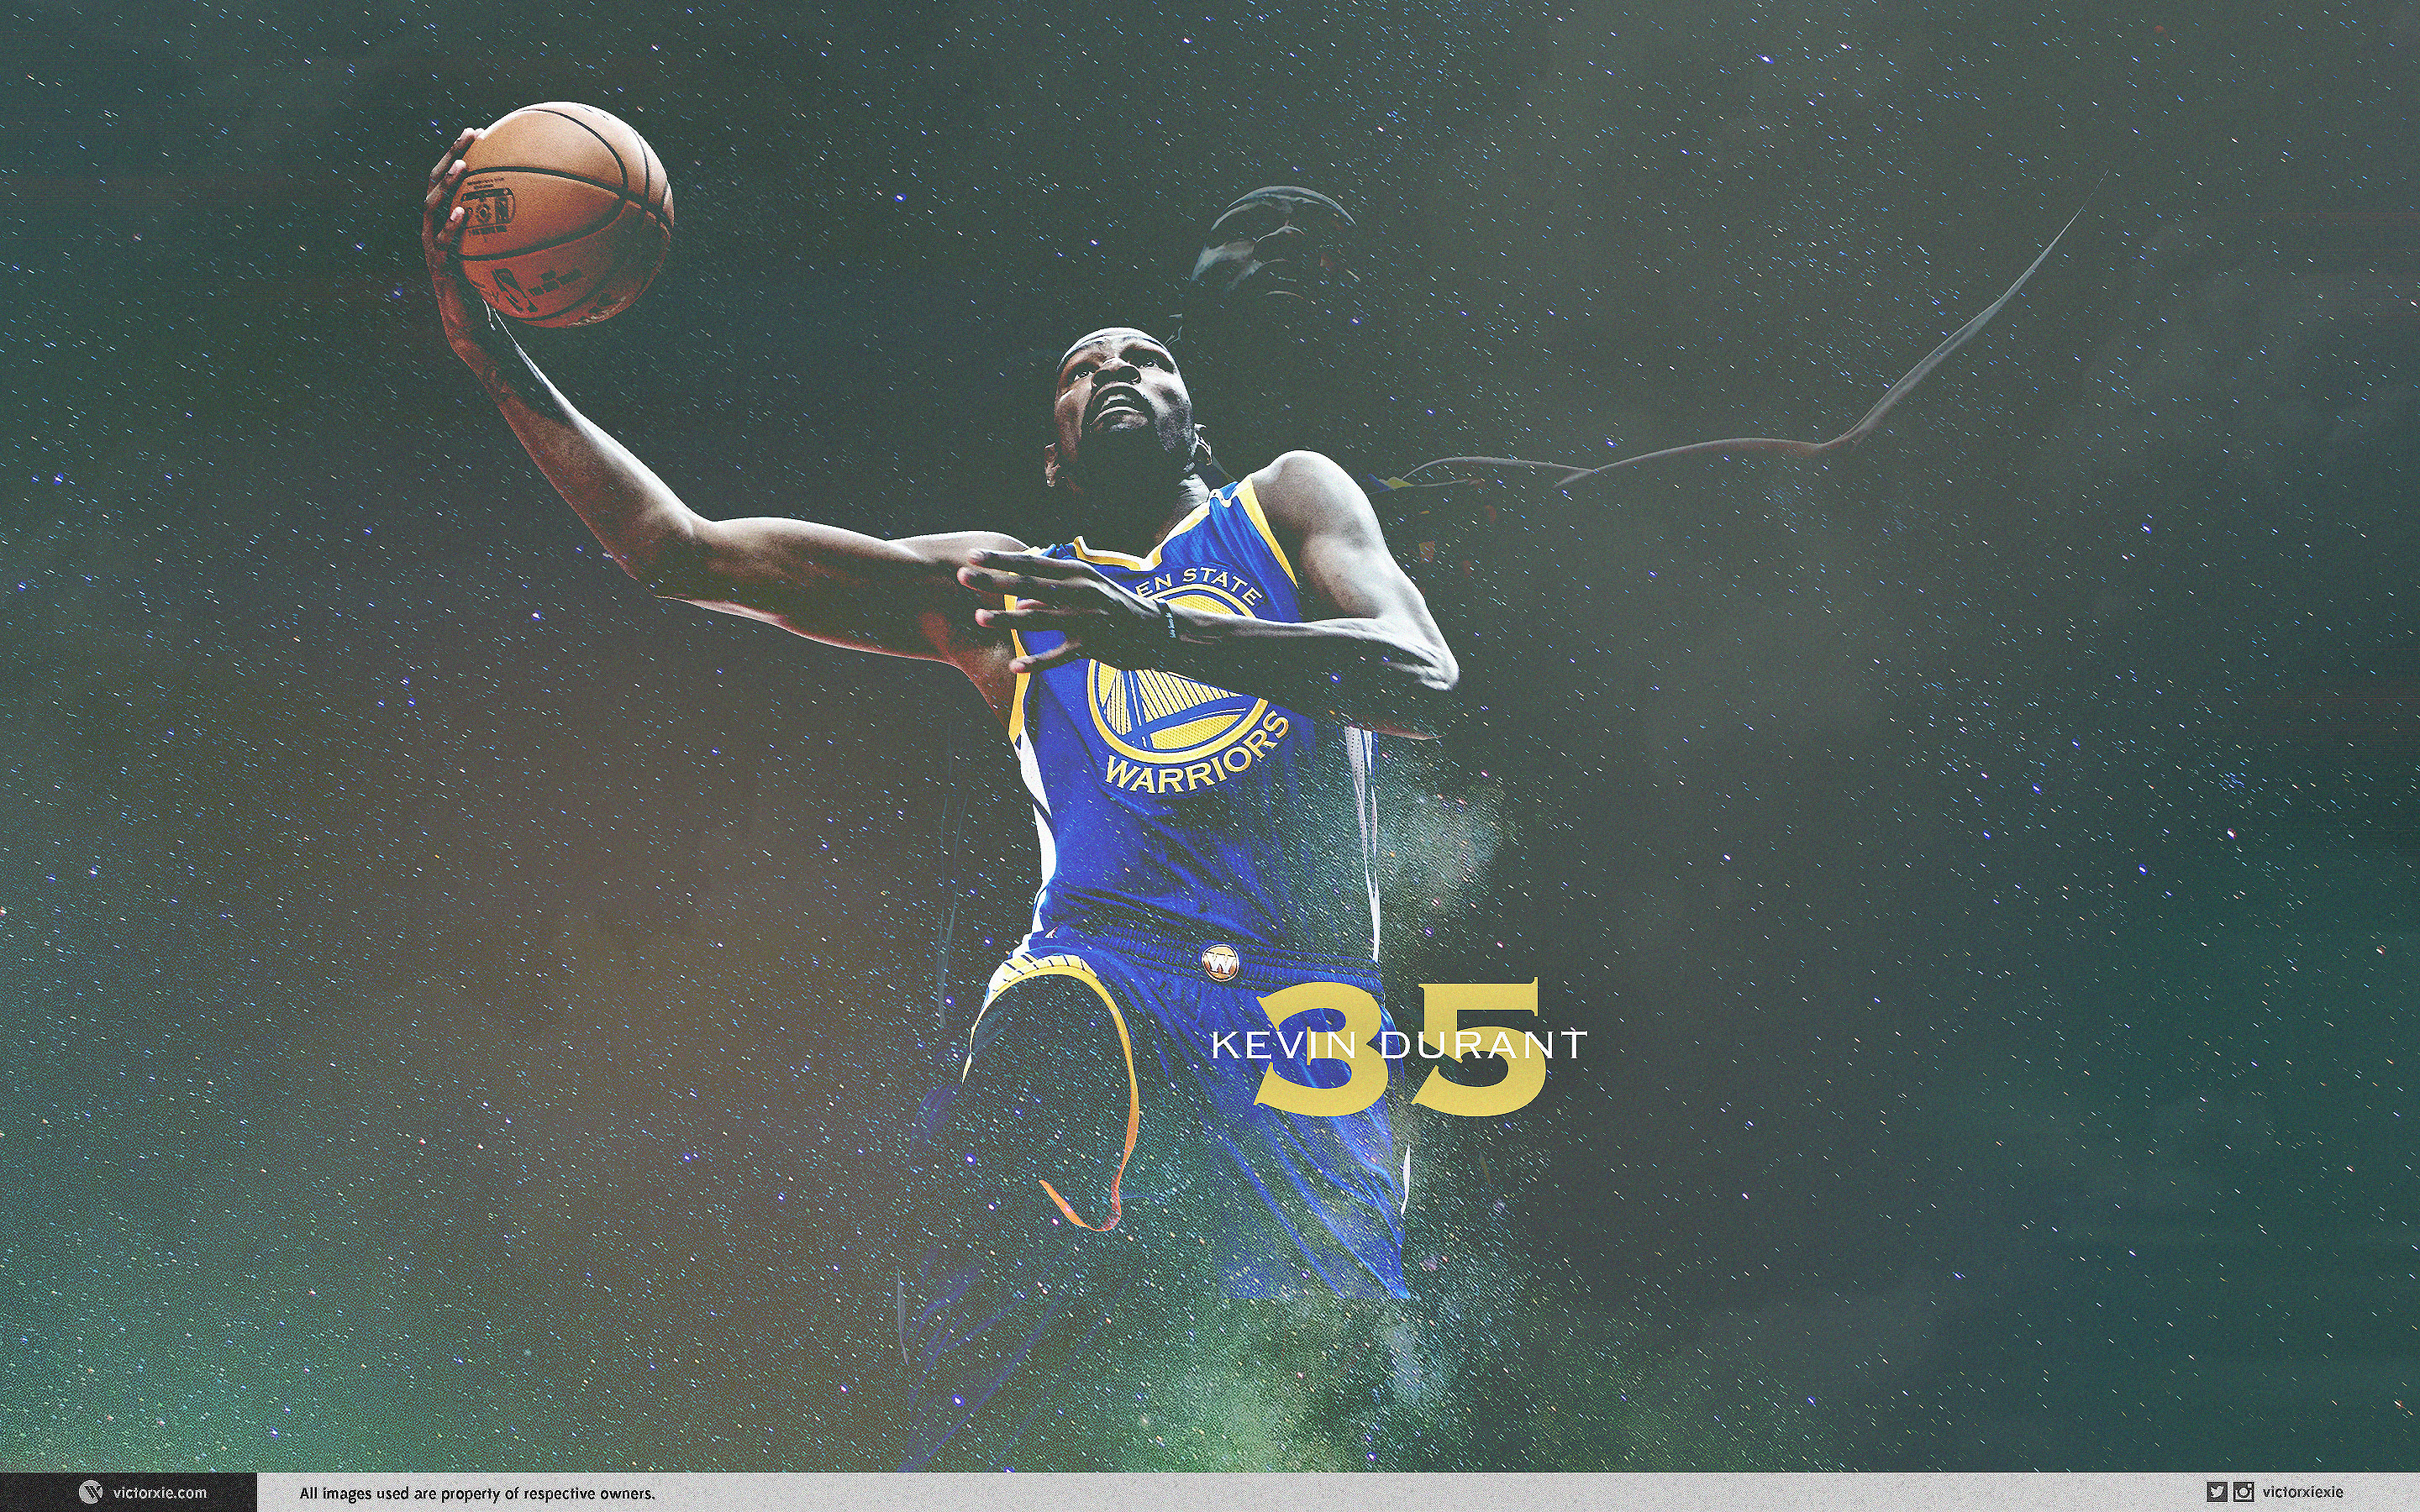 kevin durant wallpaper hd 2018 75 images